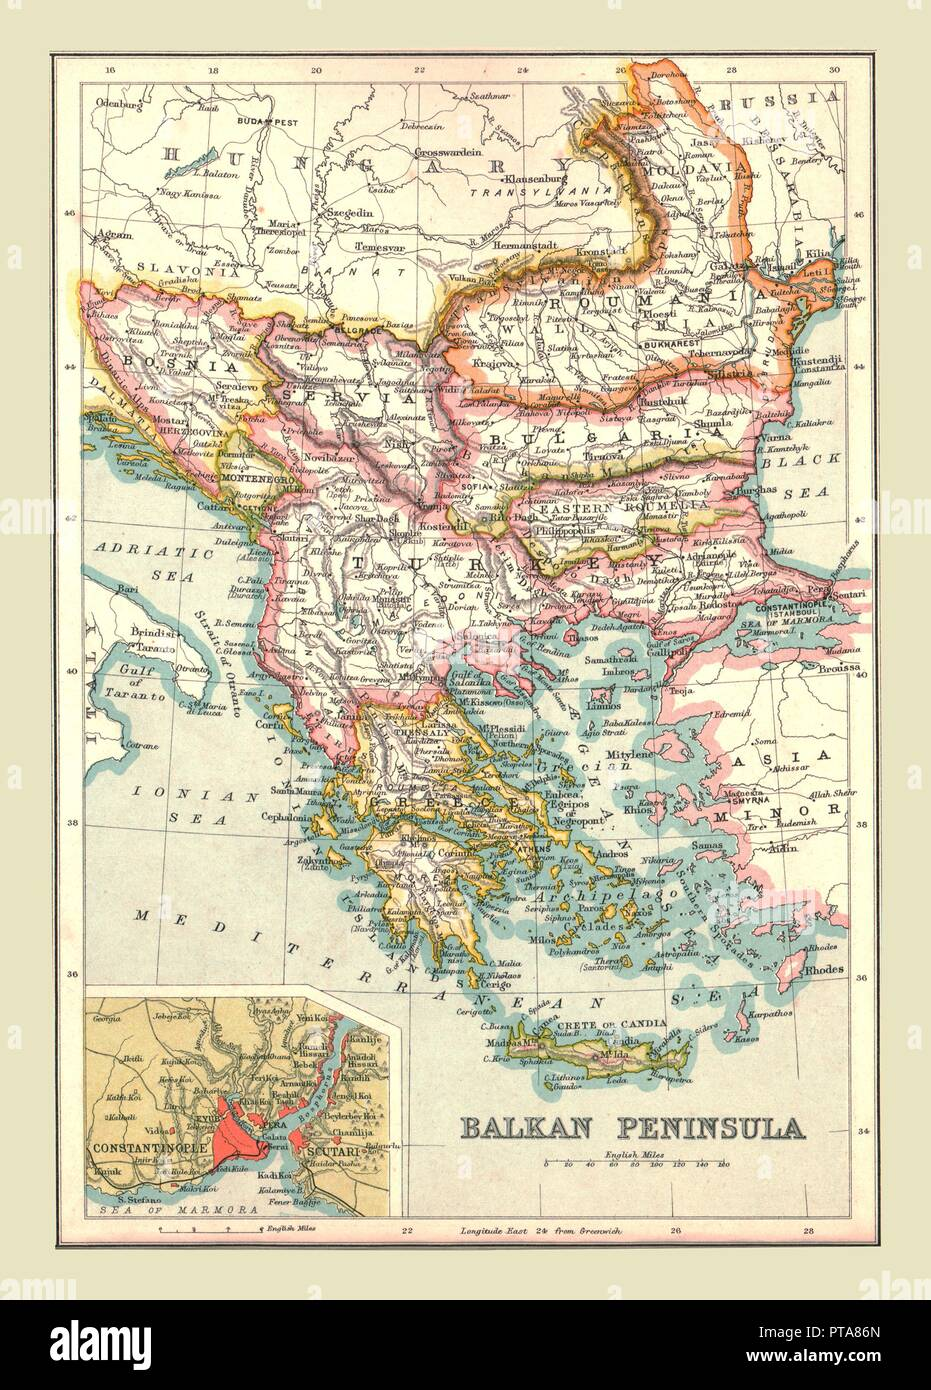 Map of the Balkan Peninsula, 1902. Showing Bosnia, Servia (Serbia), Romania, Bulgaria, and Turkish-occupied Greece, with inset of Constantinople (Istanbul). From The Century Atlas of the World. [John Walker & Co, Ltd., London, 1902] - Stock Image